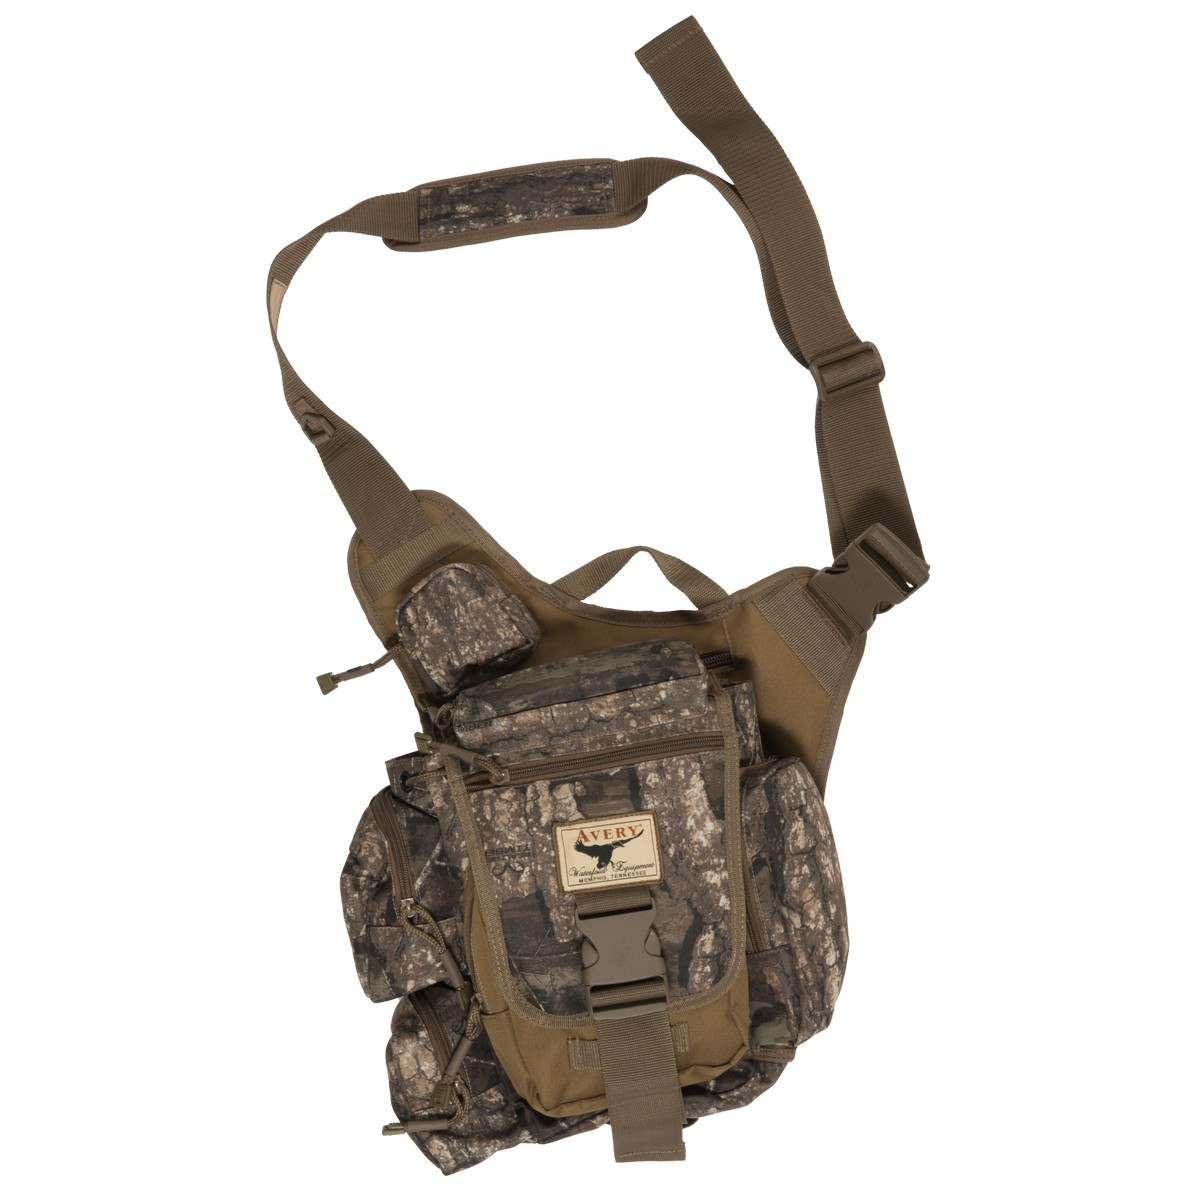 Avery Messenger Hunting Bag